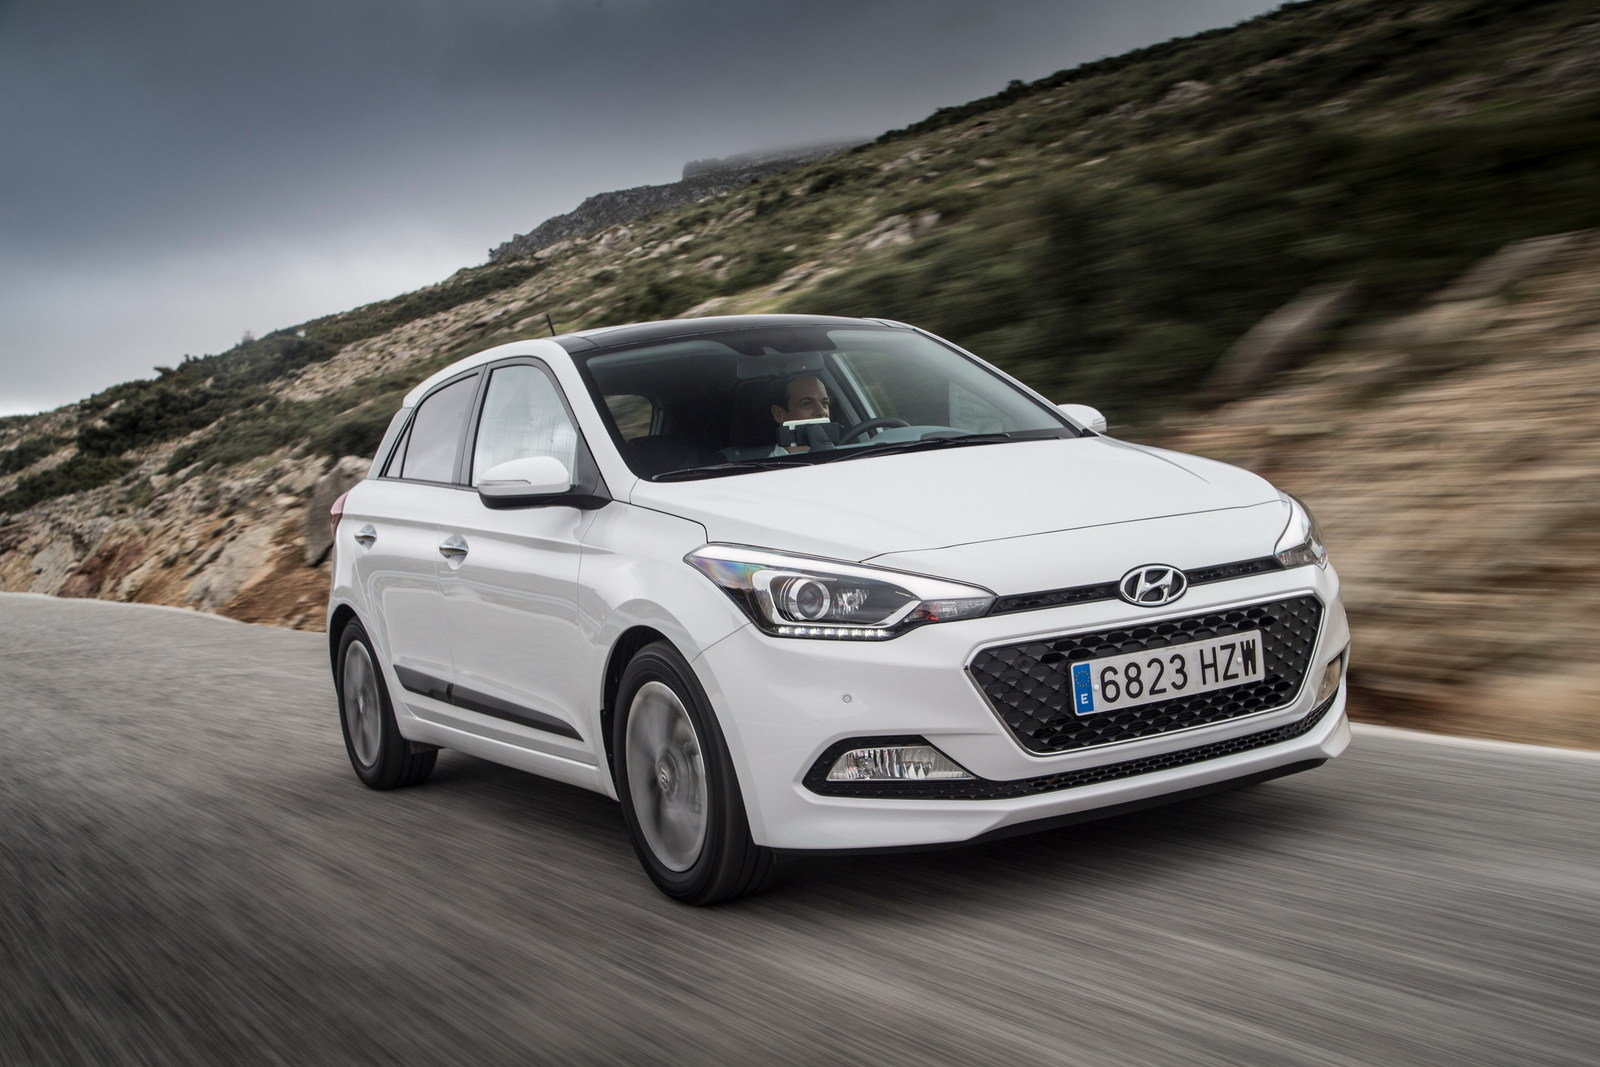 2015 hyundai i20 picture 647005 car review top speed. Black Bedroom Furniture Sets. Home Design Ideas